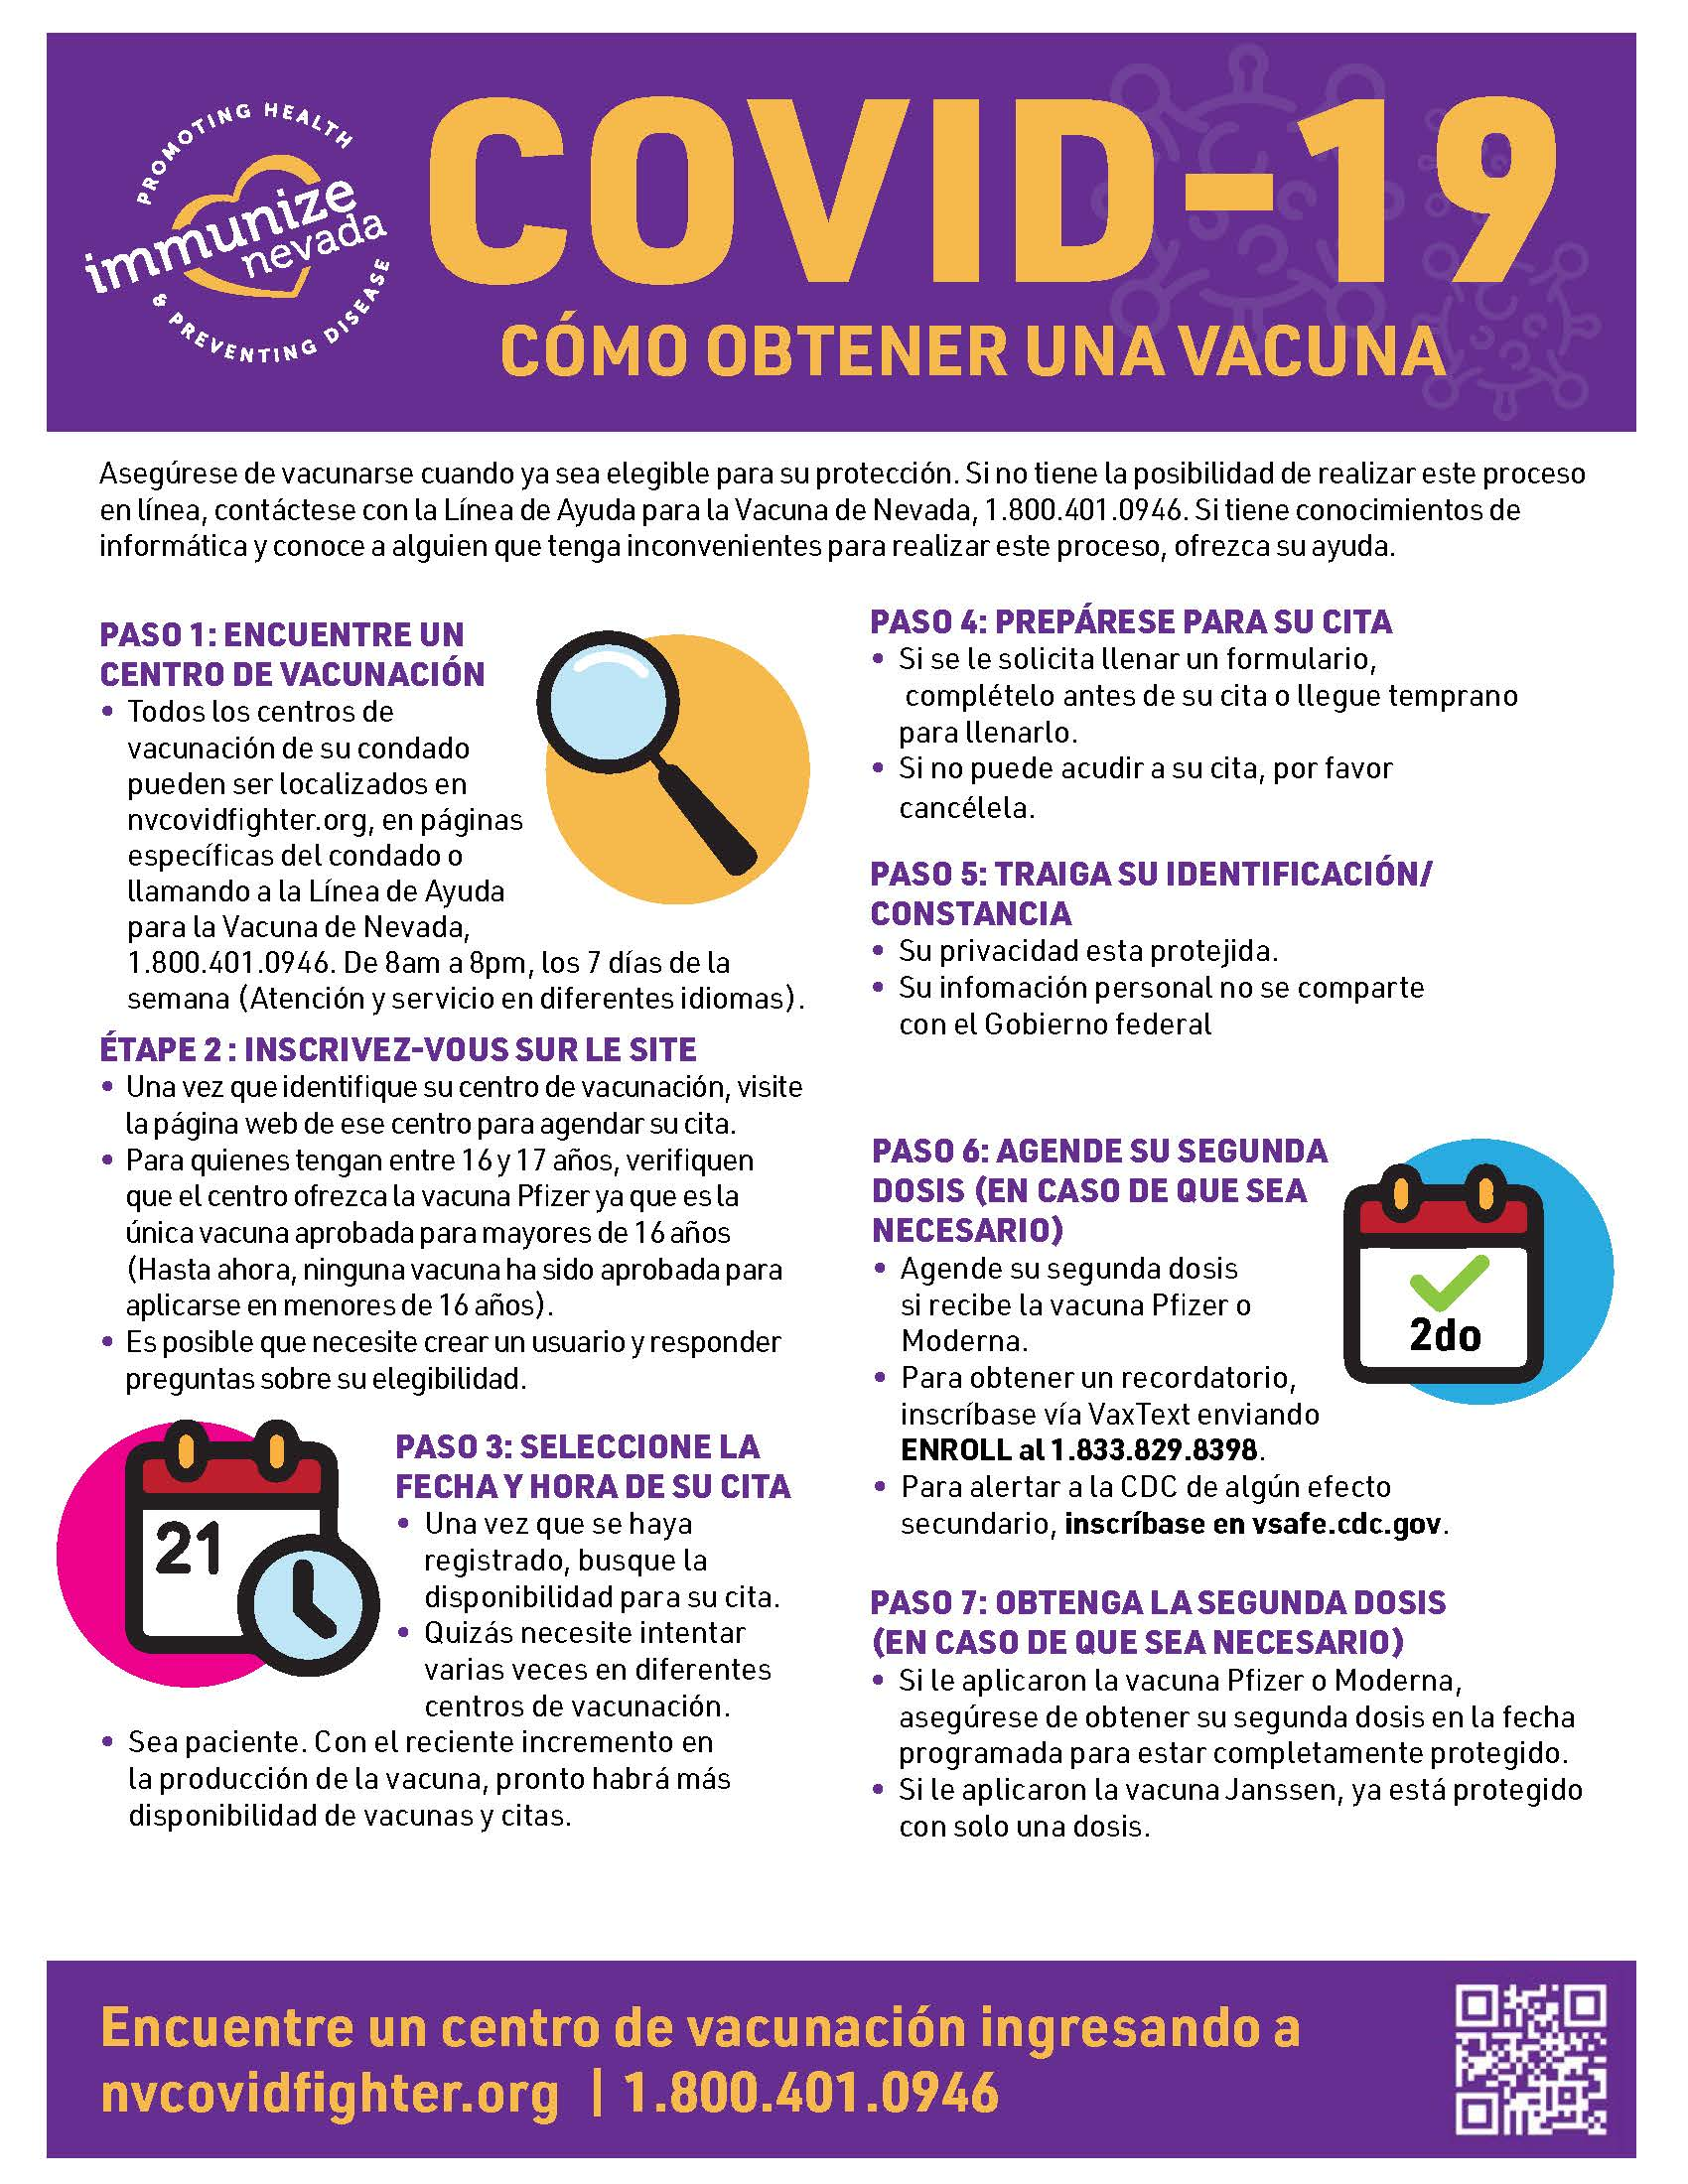 COVID-19 Vaccine Appointment Steps Flyer Spanish ADA_v1